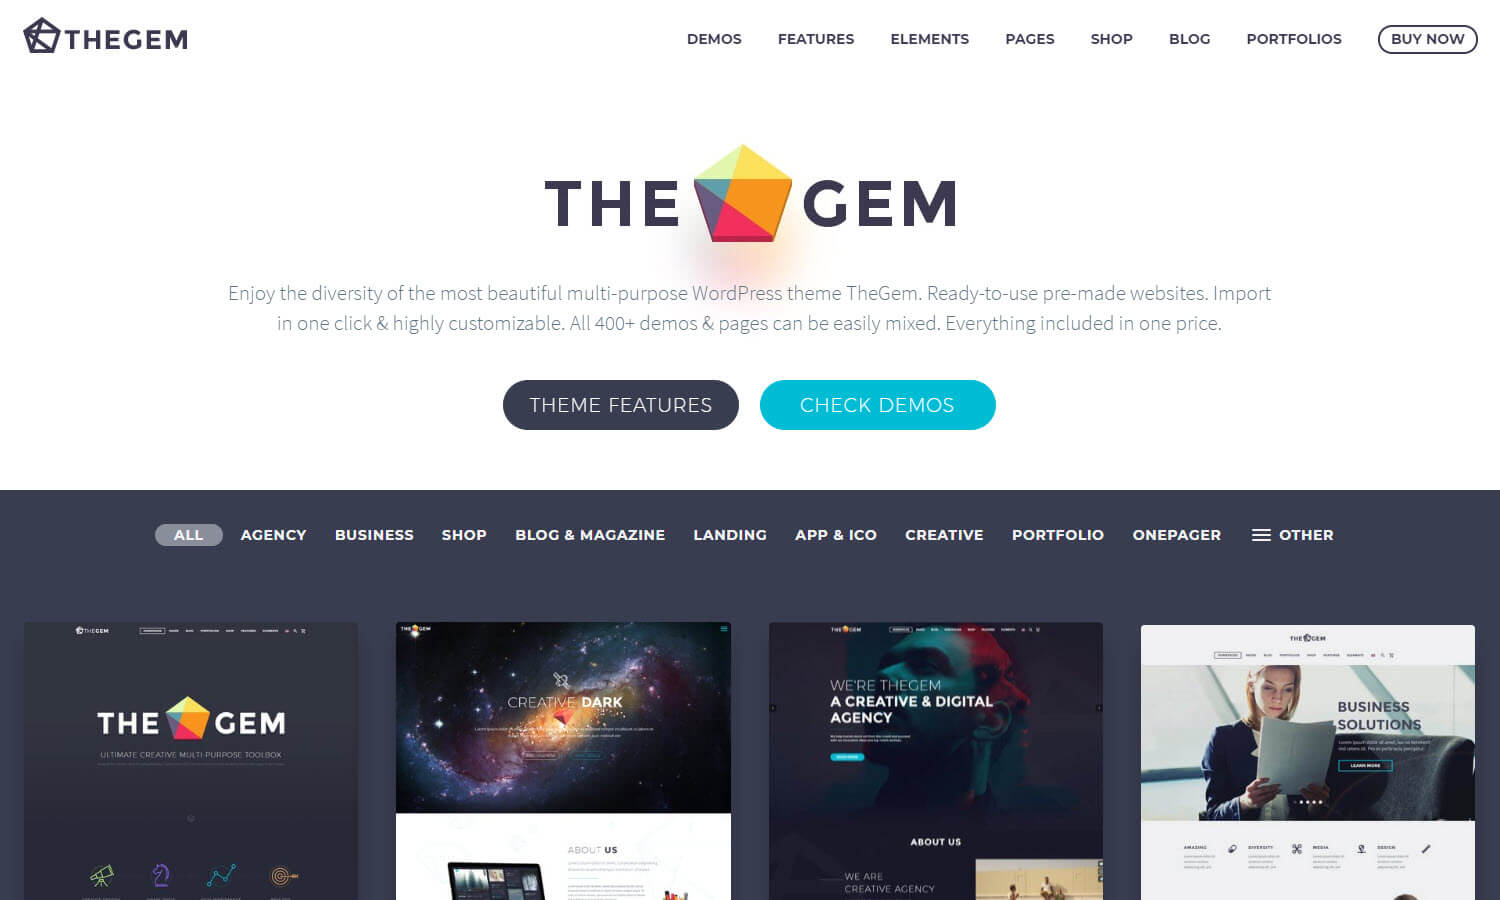 The Gem screenshot